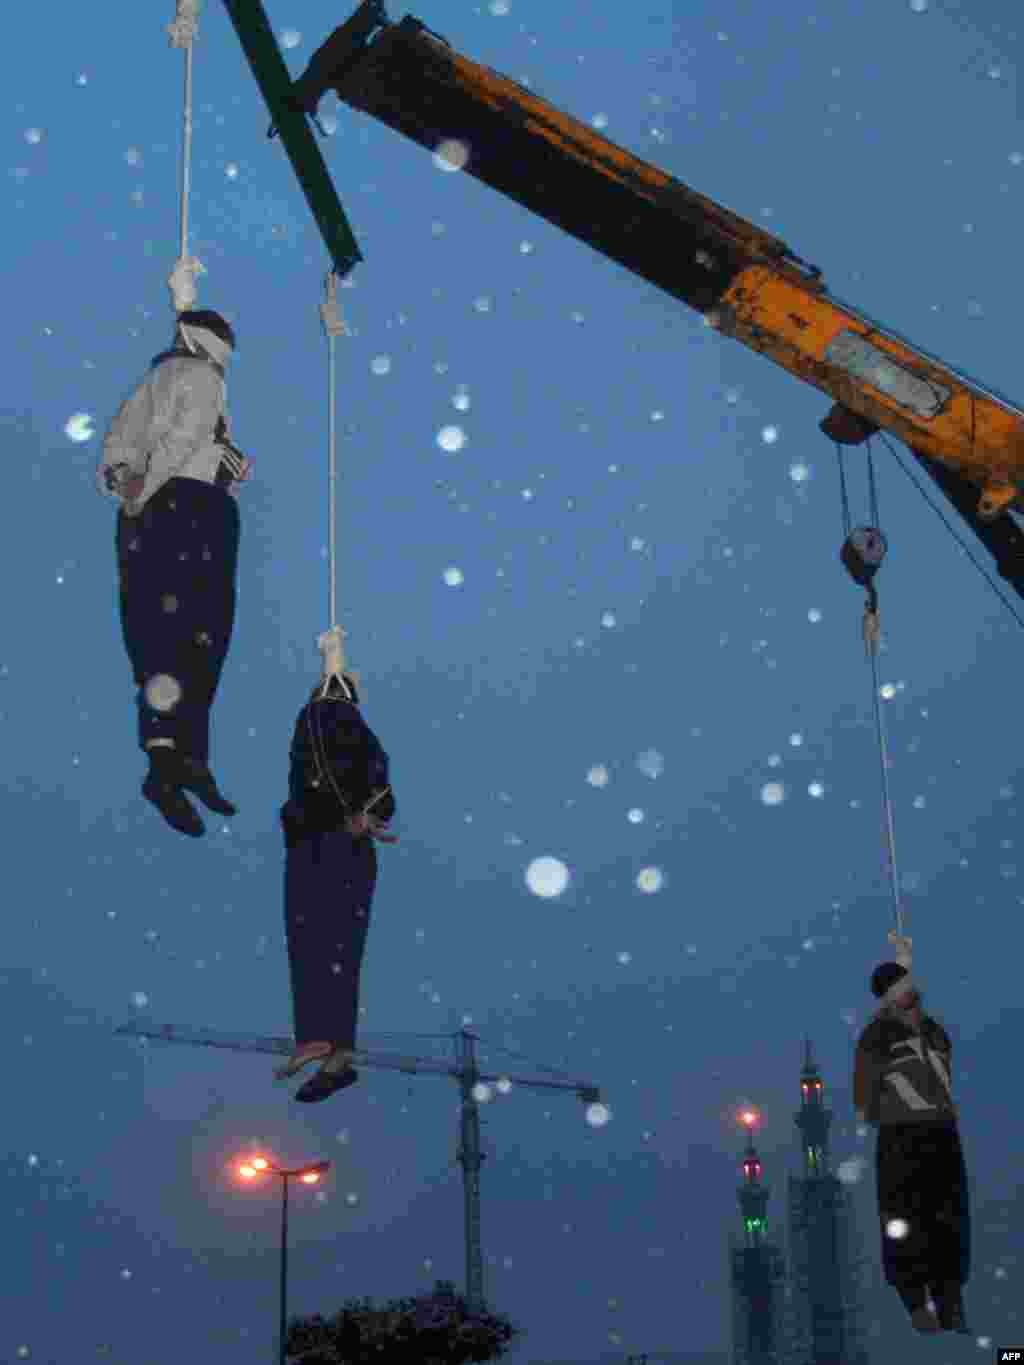 Three Iranian drug traffickers being hanged in the central city of Qom - Three Iranian drug traffickers hang limply from the nooses as it snows in a square in the central city of Qom, south of Tehran, on January 2. Iran hanged 13 convicted criminals that day, including the mother of two young children who had been found guilty of murdering her husband after discovering he was having an affair.